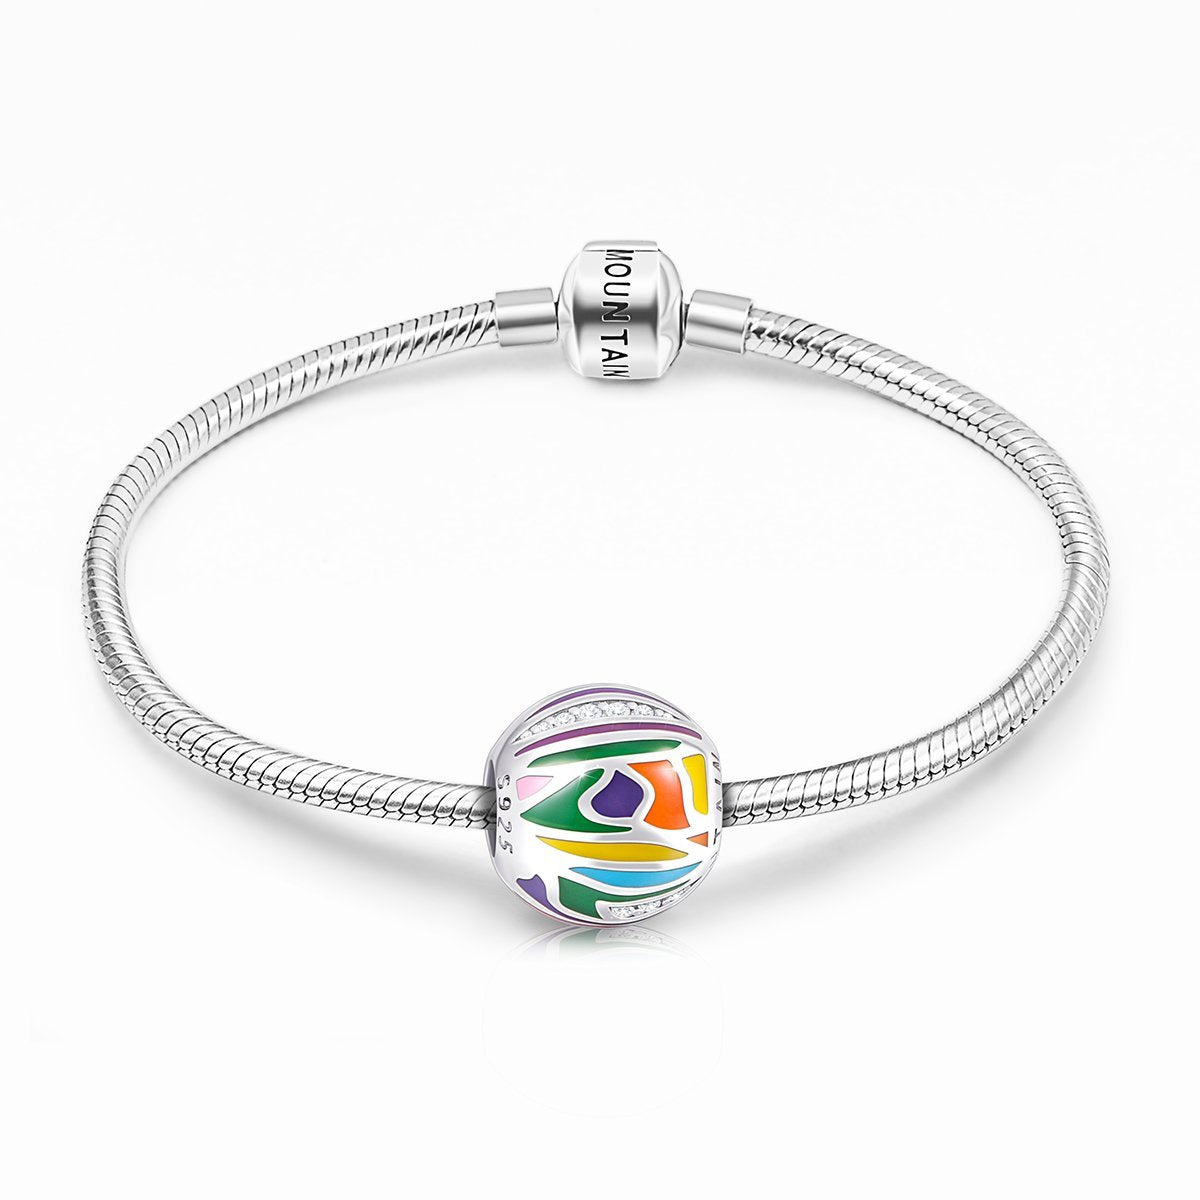 Abstract Painting Craft Colorful Charm in 925 Sterling Silver for Bracelet and Necklace